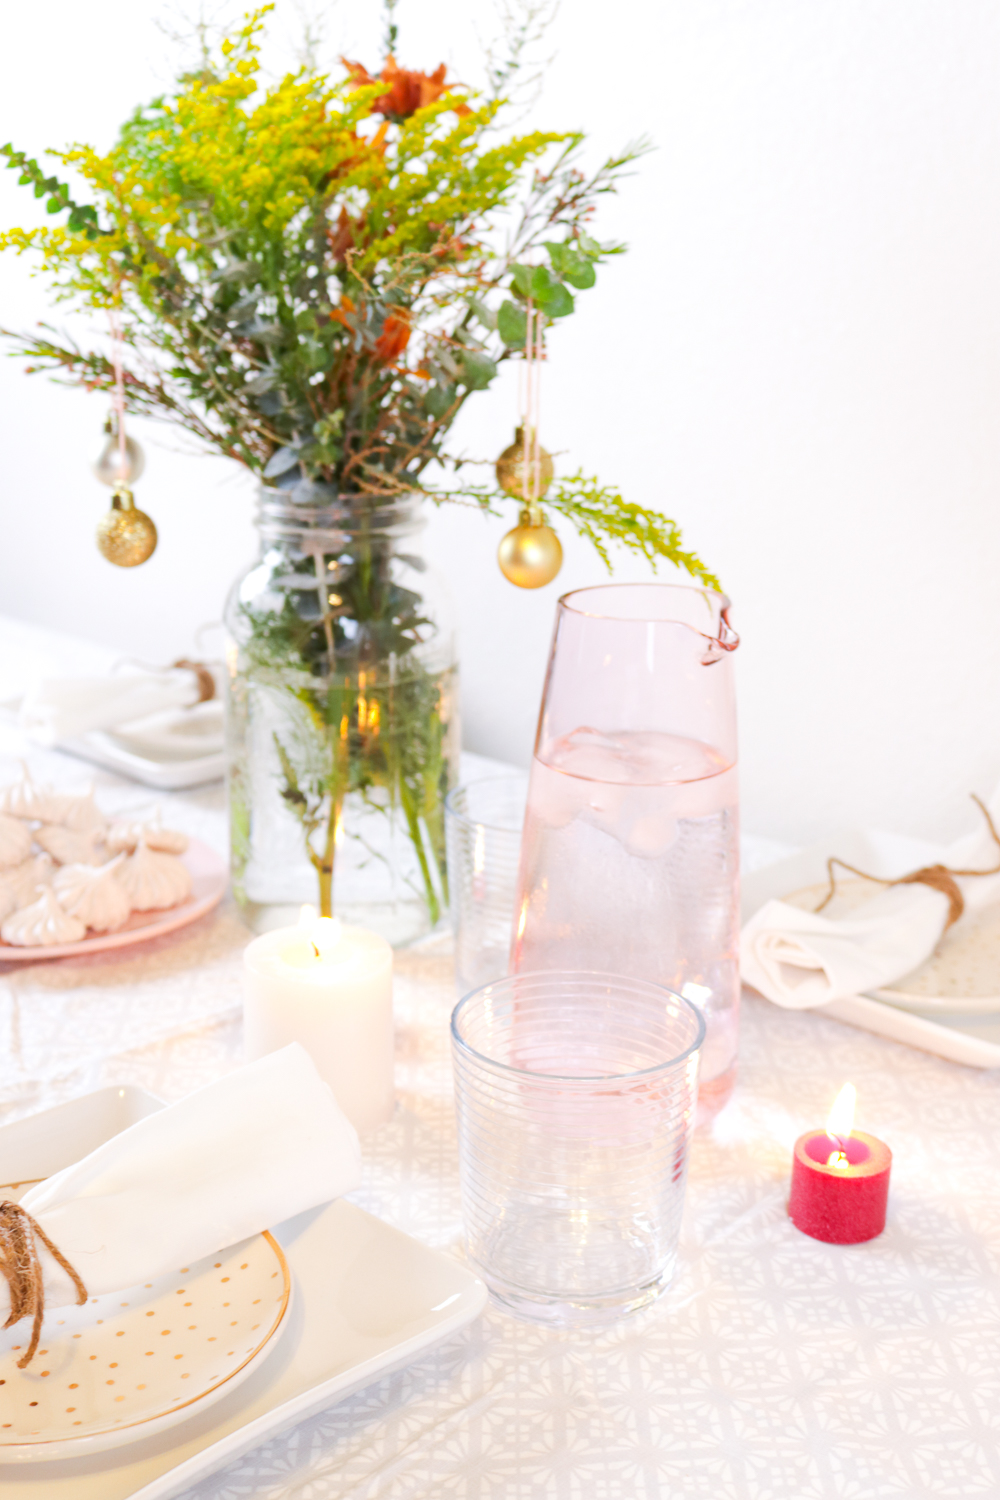 table-setting-one-o-diy-oneo-christmas-setting-holiday-decor-blog-hop-7